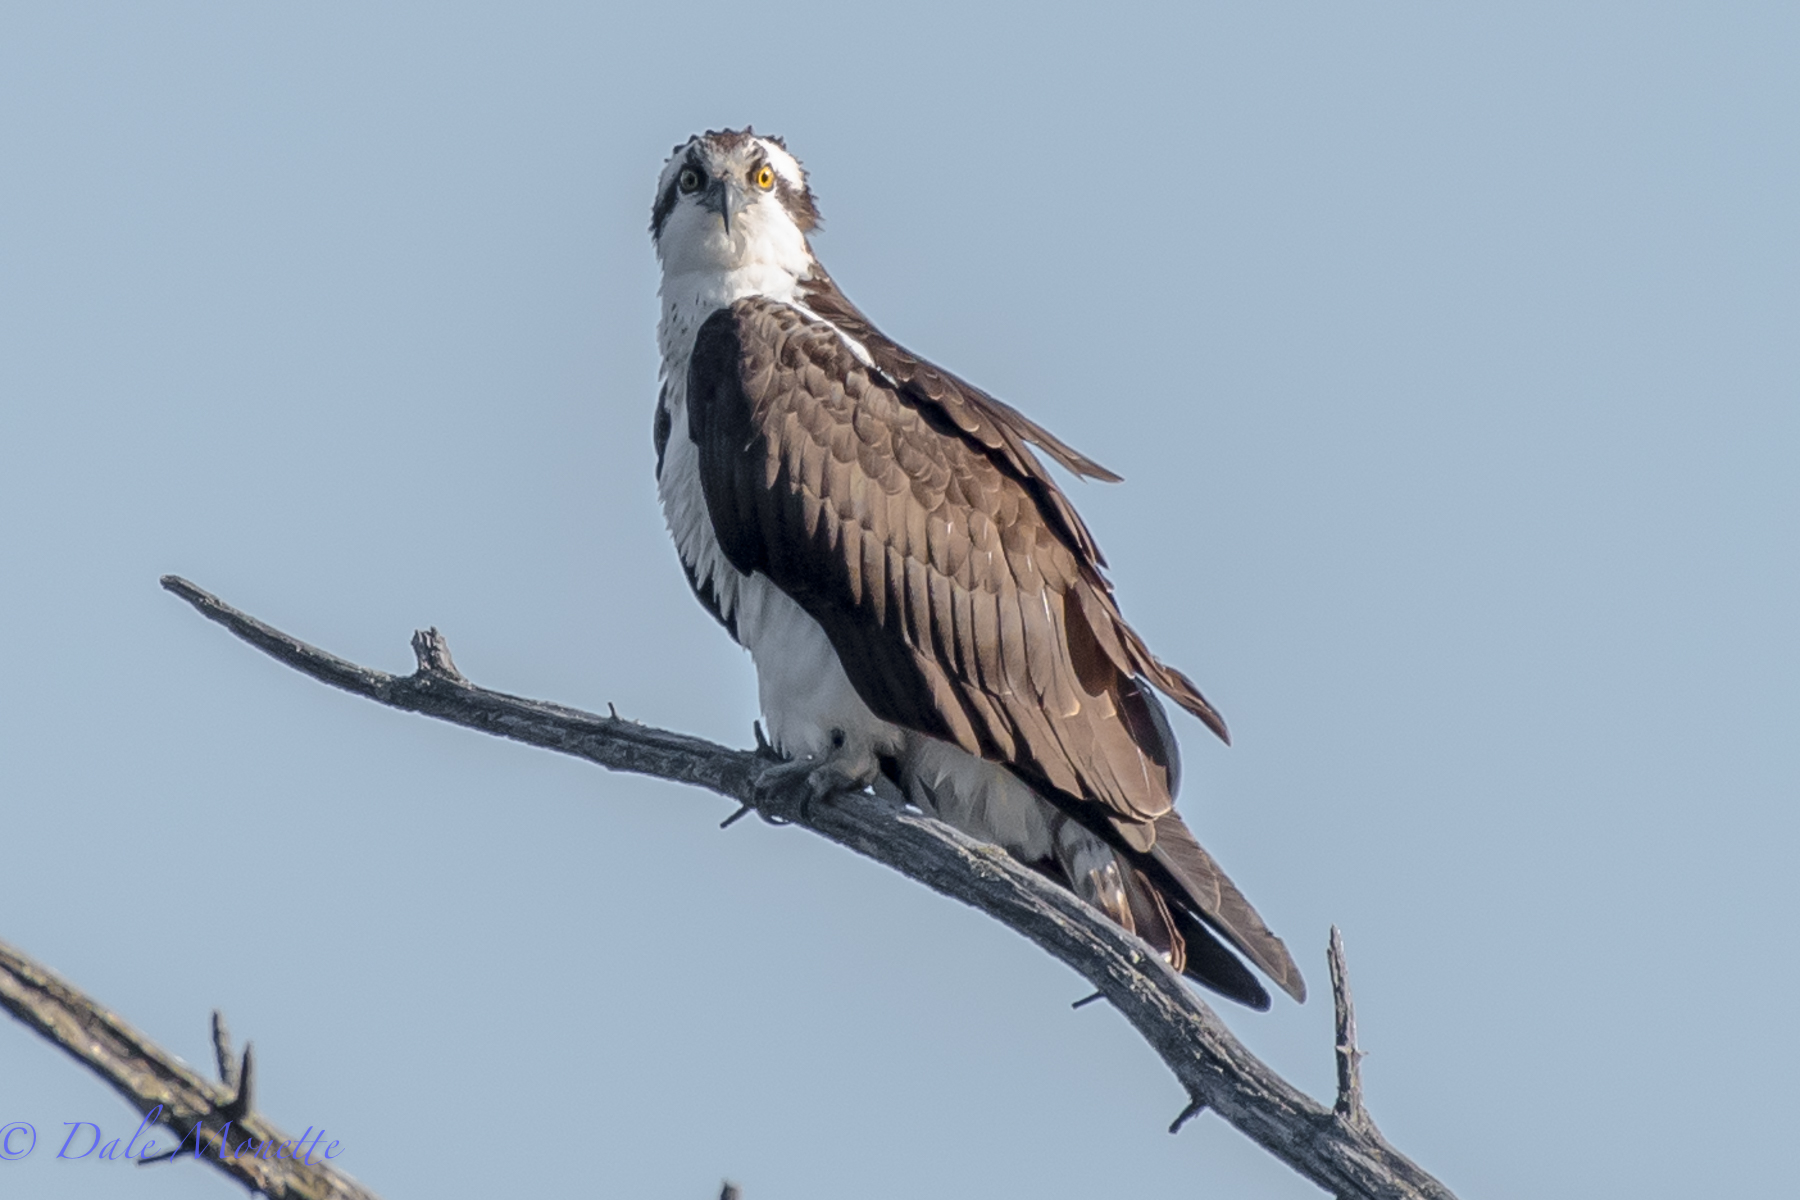 This osprey has been hanging around the beaver pond for a week now.  This is todays picture  (4/13/16).  I suspect to see him gone on his way north any day now.  Check out those wild eyes....